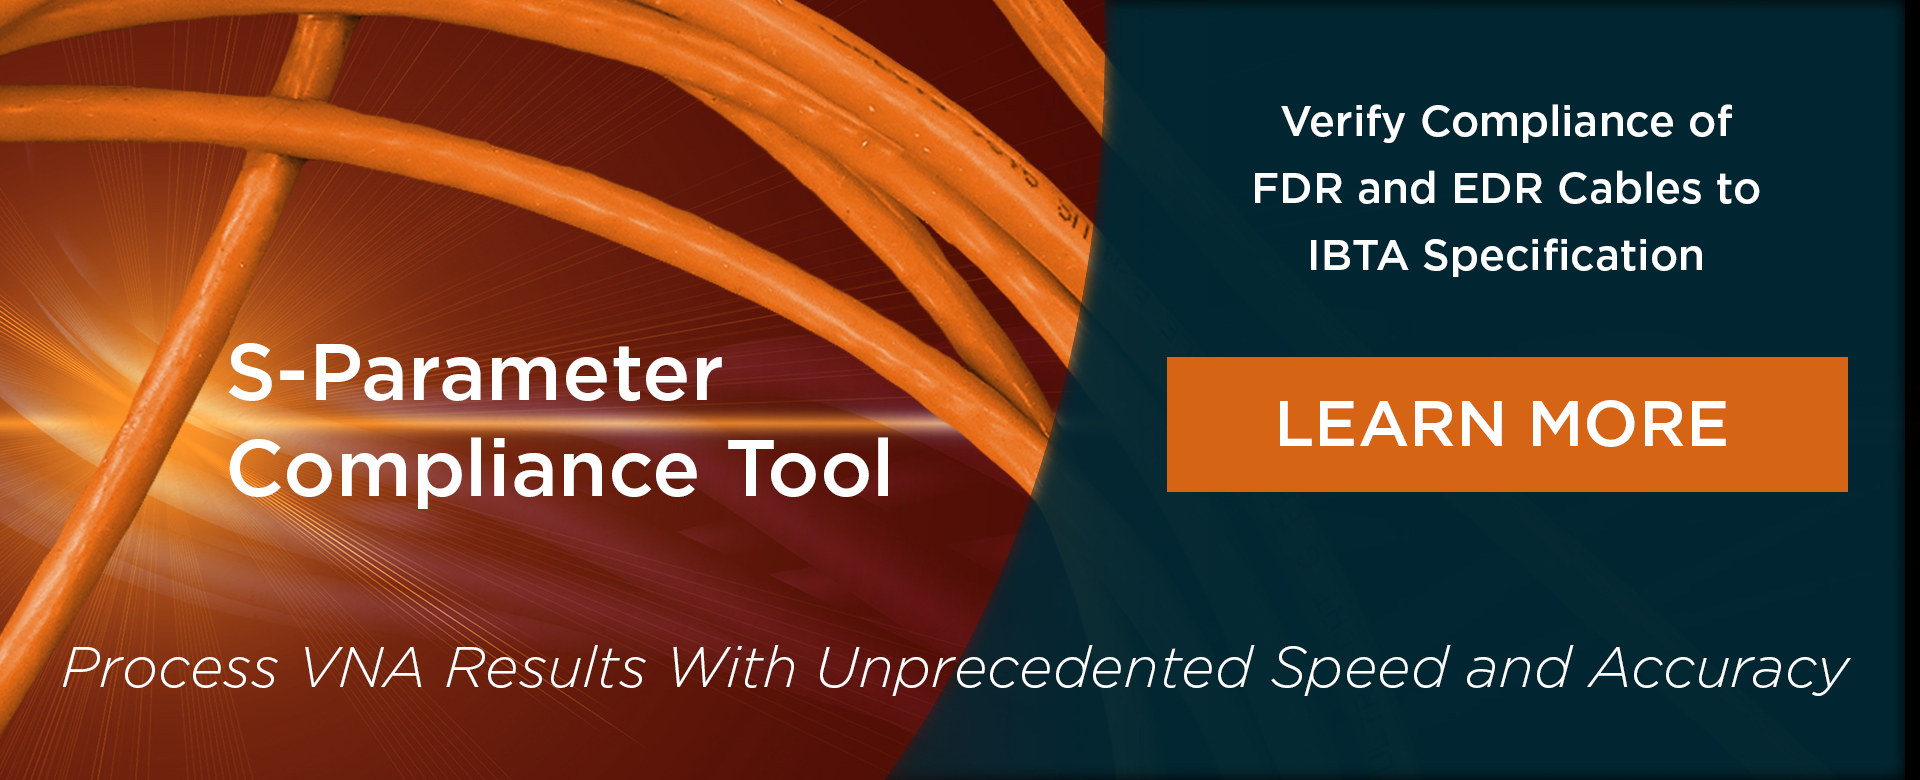 S-Parameter Compliance Tool Verify Compliance of FDR and EDR Cables to IBTA Specification